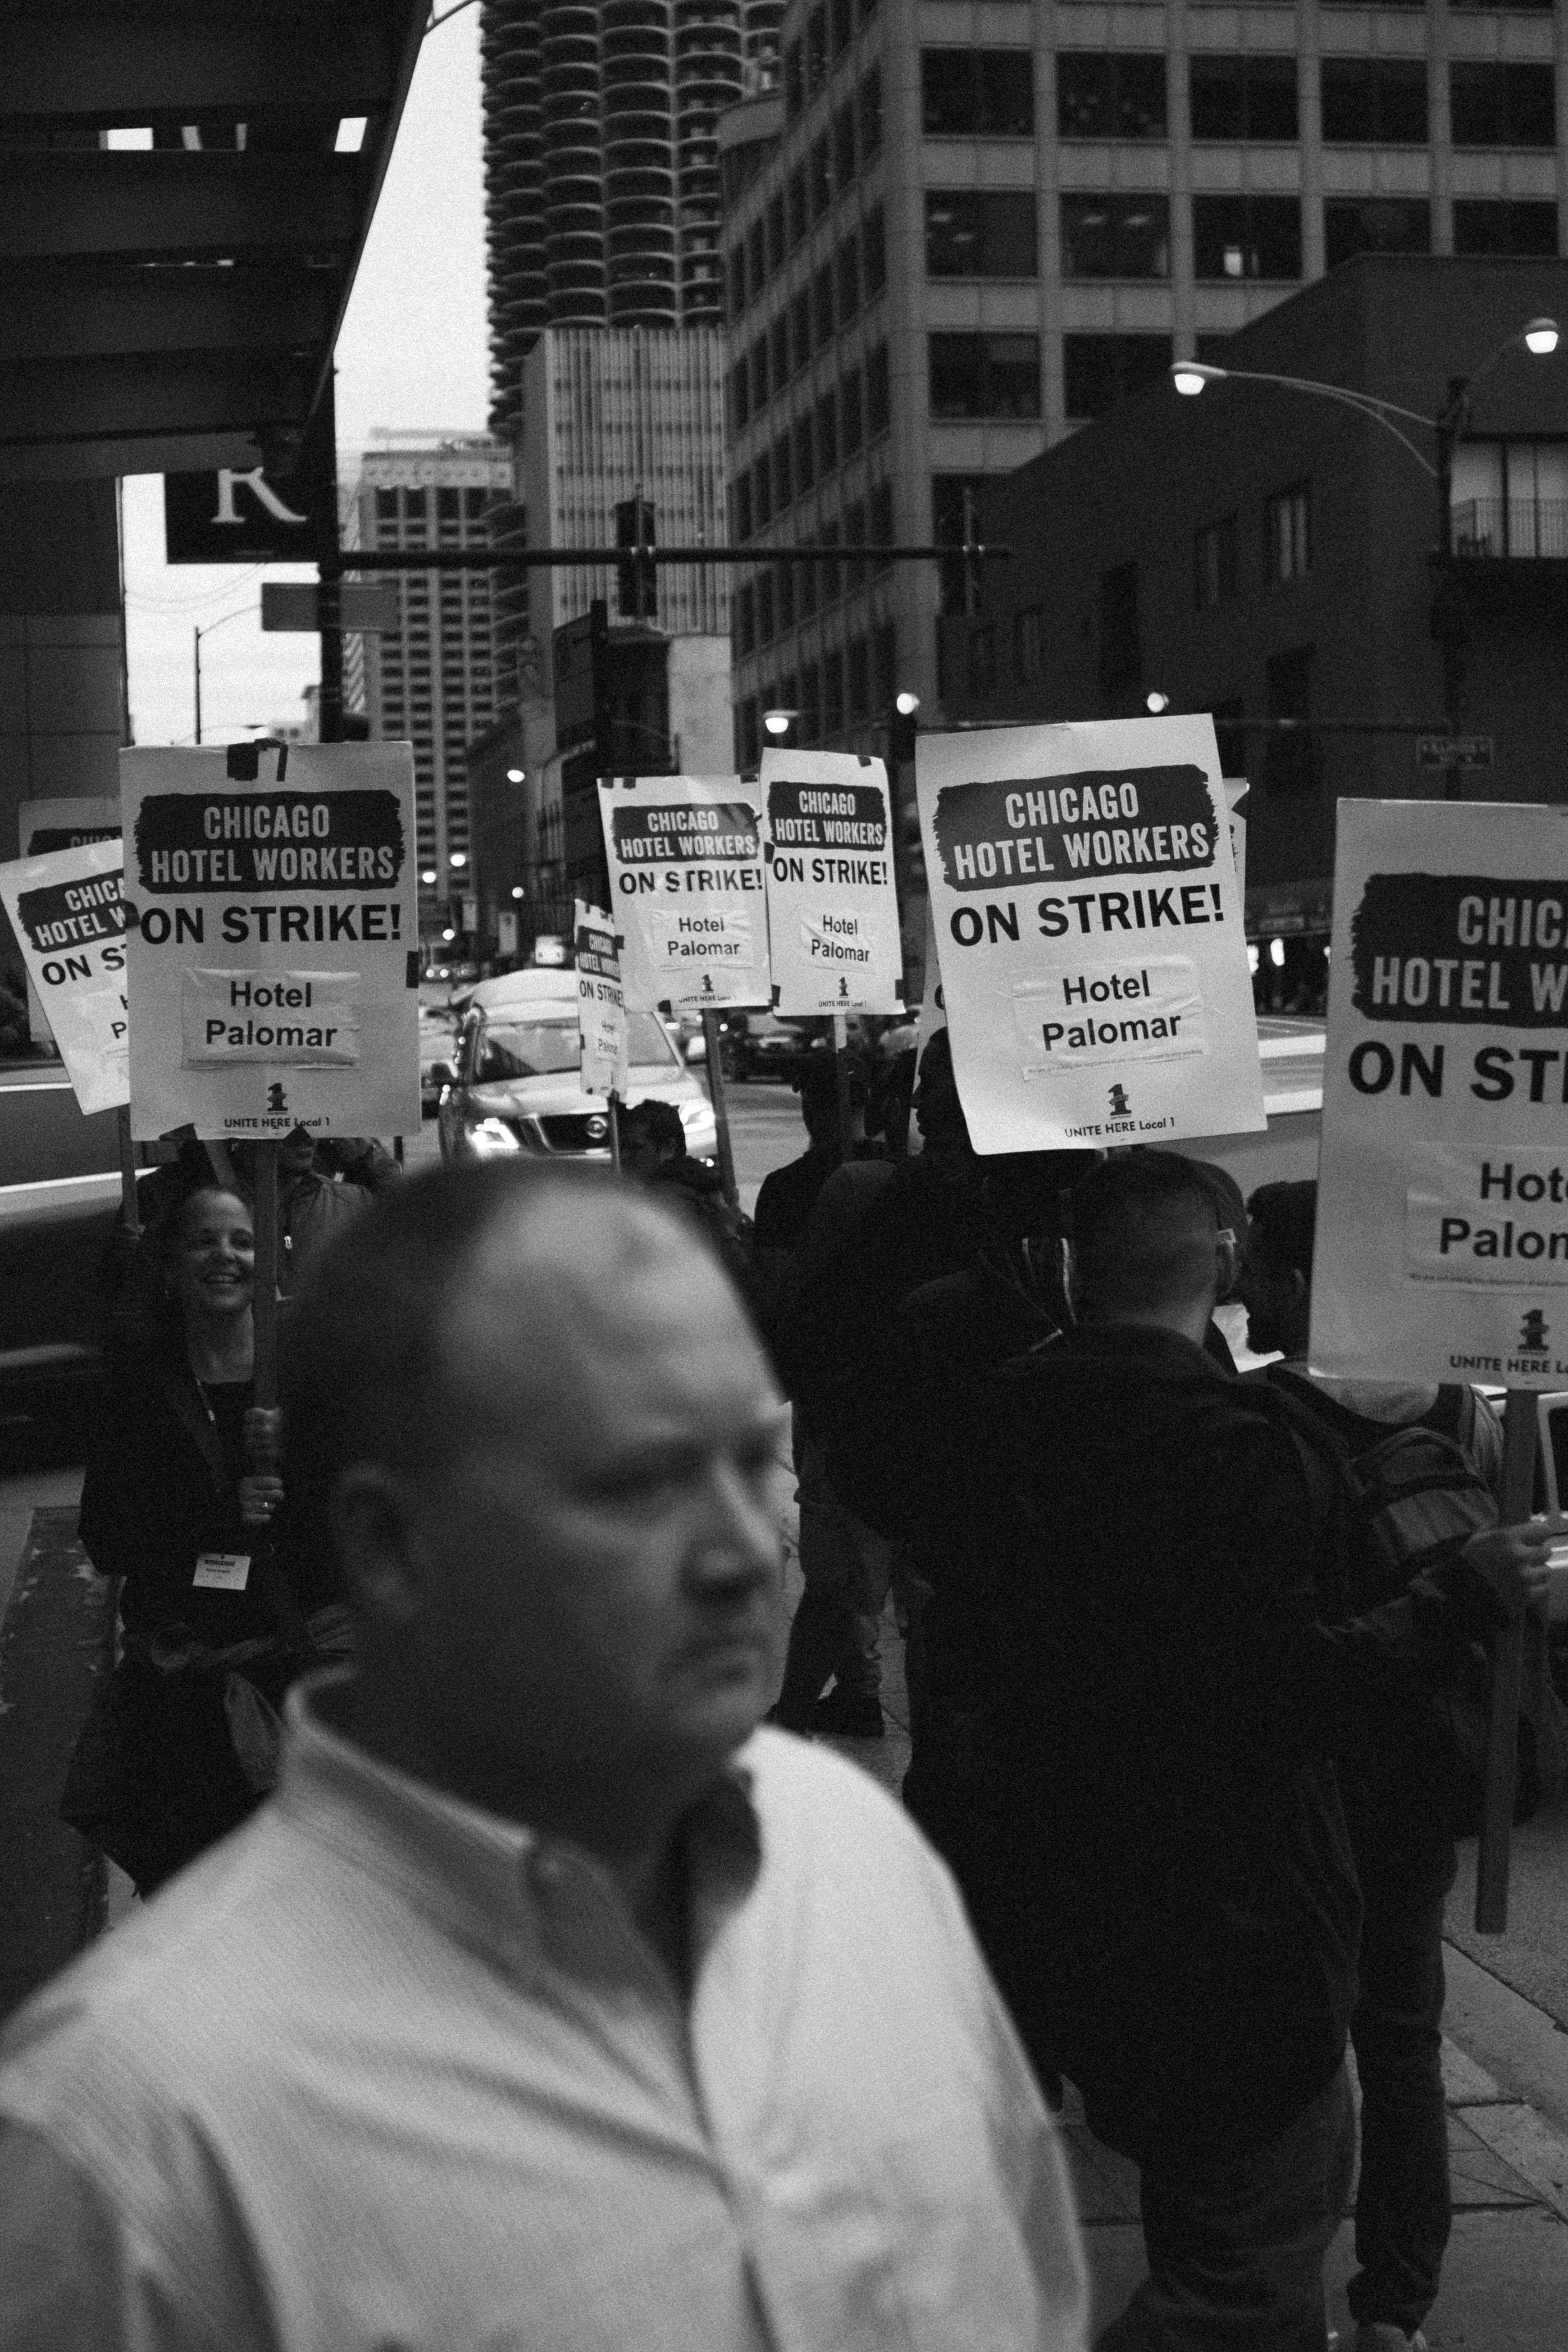 Man stands in front of Chicago Hotel Workers picket line